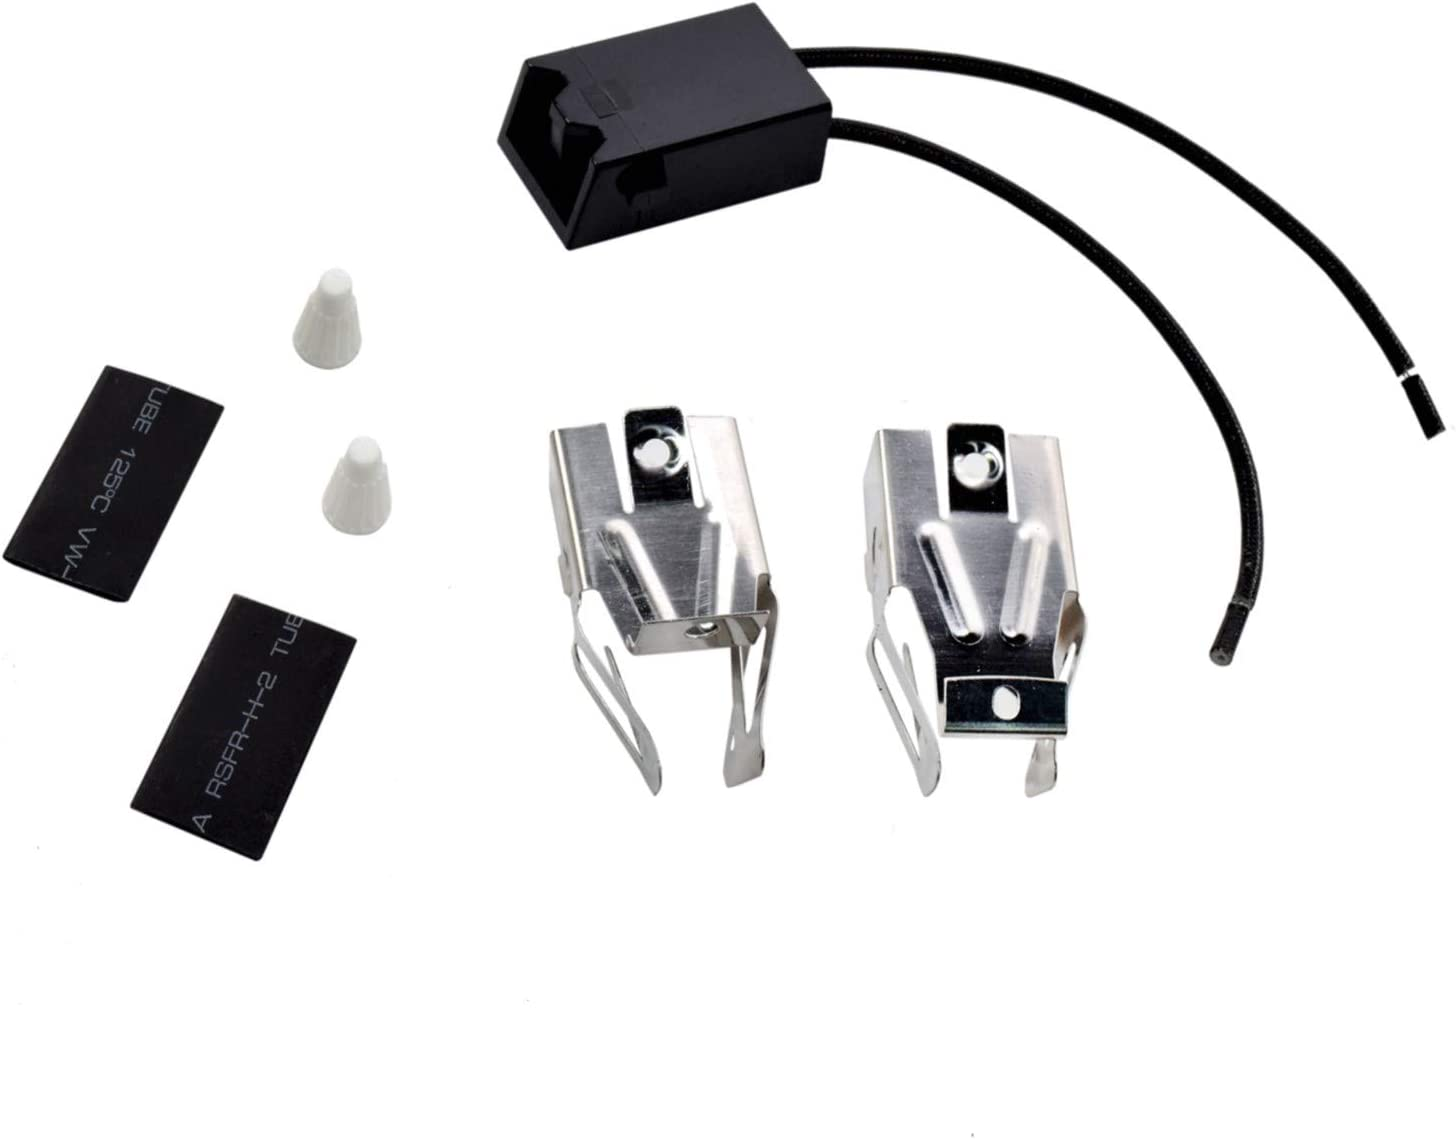 HQRP Range Top Burner Receptacle Kit Replacement for Kenmore 747954610 7479547611 9609012190 9609012191 9609072890 664RF3020XYN1 664RF3020XYN2 664RF3020XYW0 Oven Stove plus HQRP Coaster